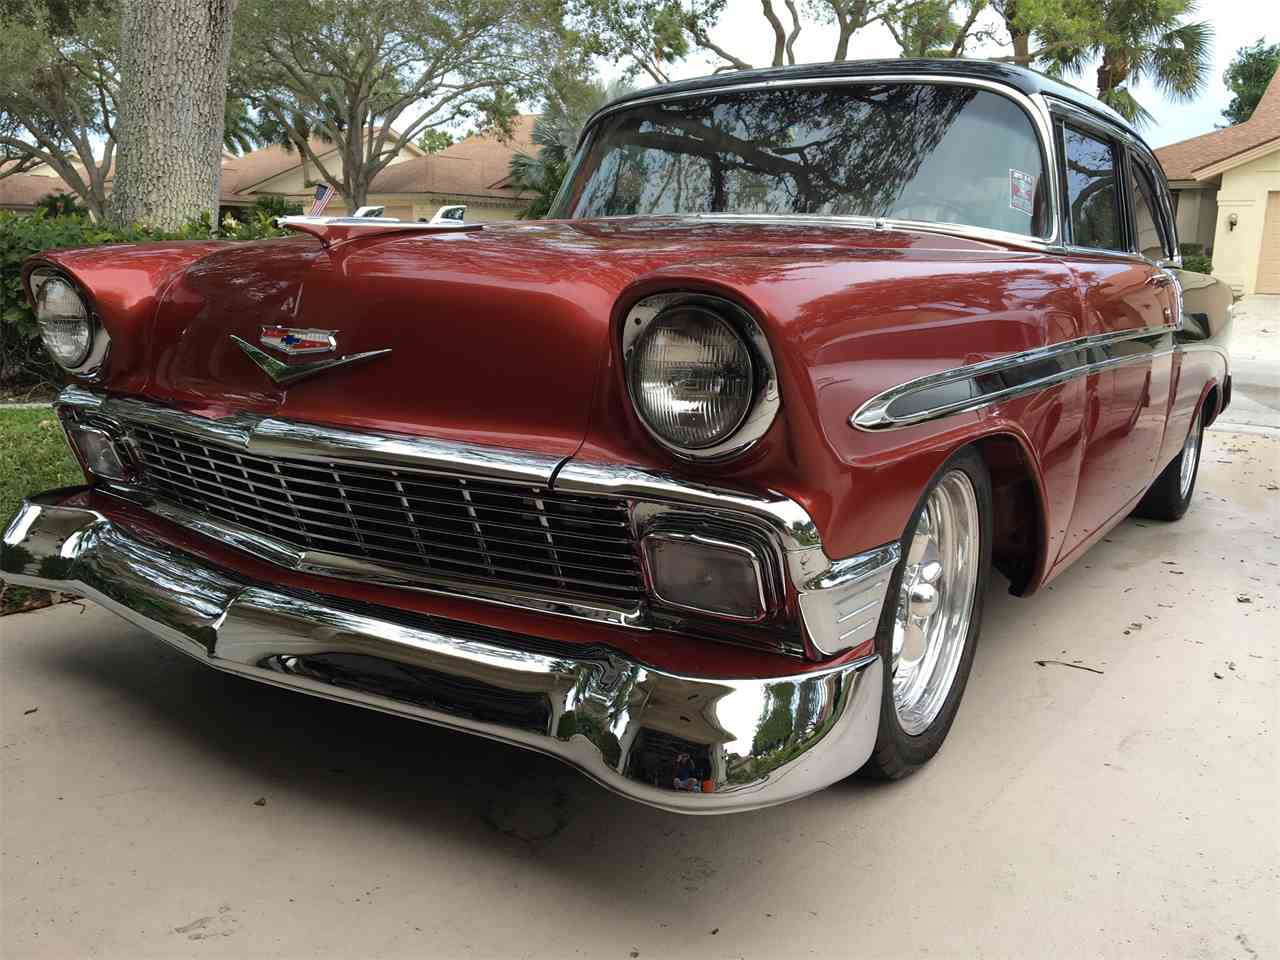 1956 chevrolet bel air for sale classic car liquidators - 1956 Chevrolet Bel Air For Sale Cc 973813